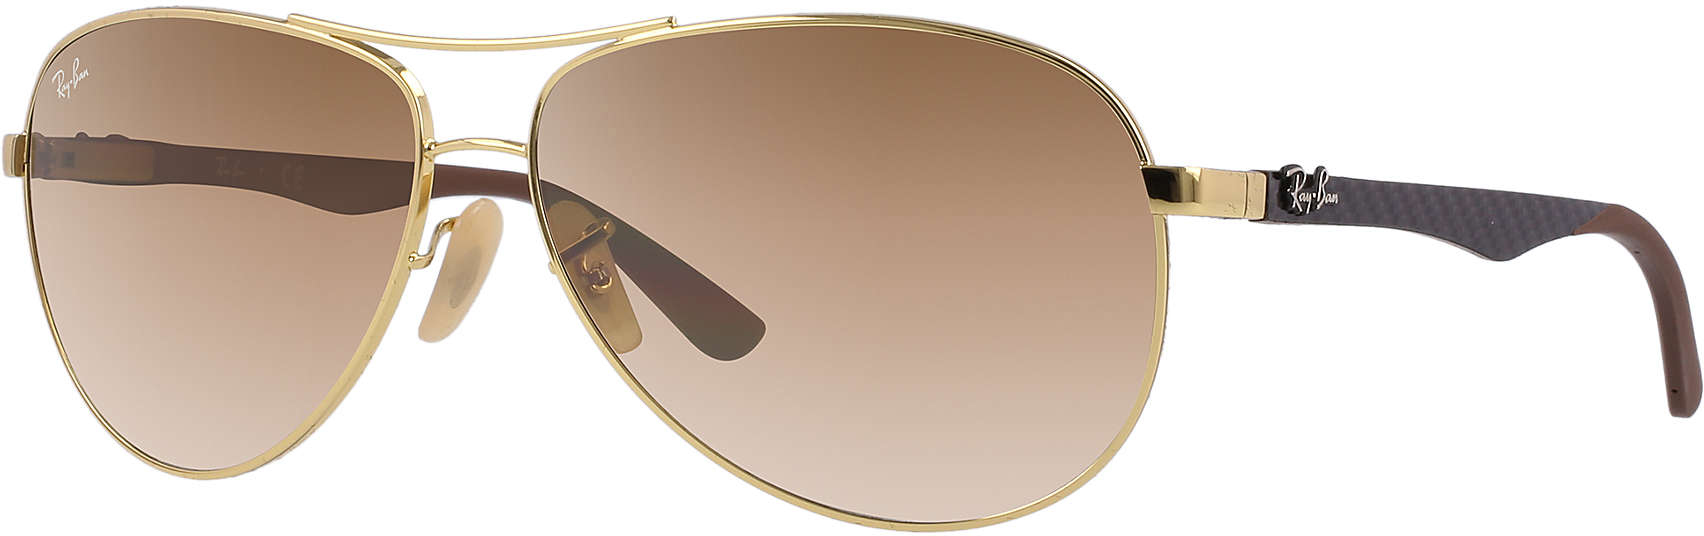 971202a57c9 Ray-Ban RB8313 Sunglasses